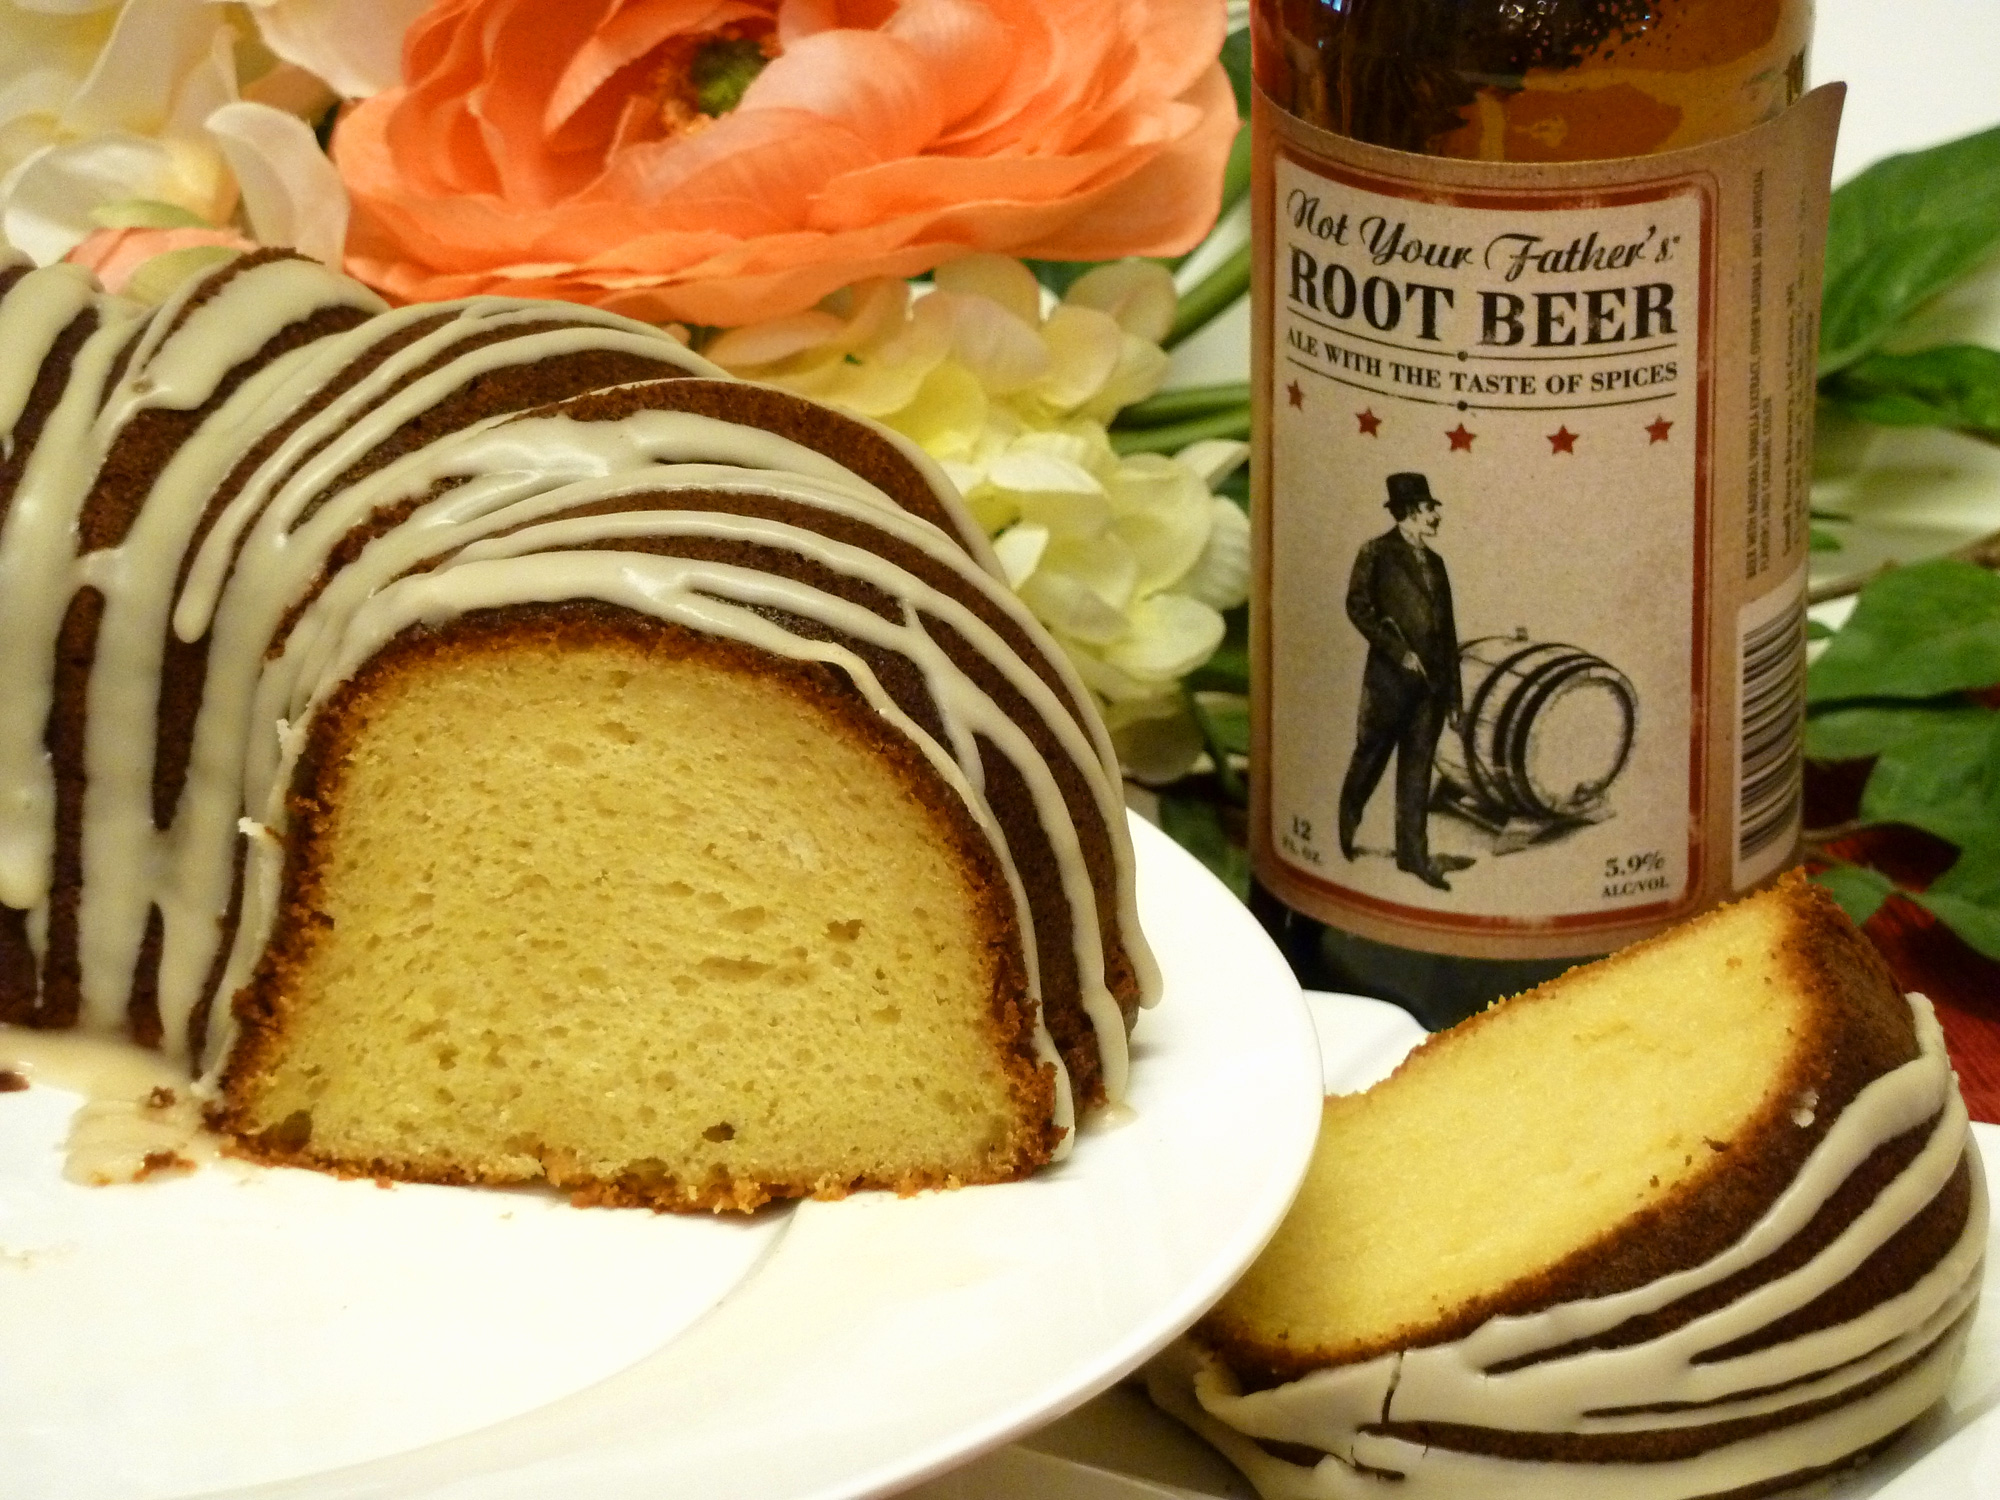 Deliciously moist root beer cake is made with real beer.